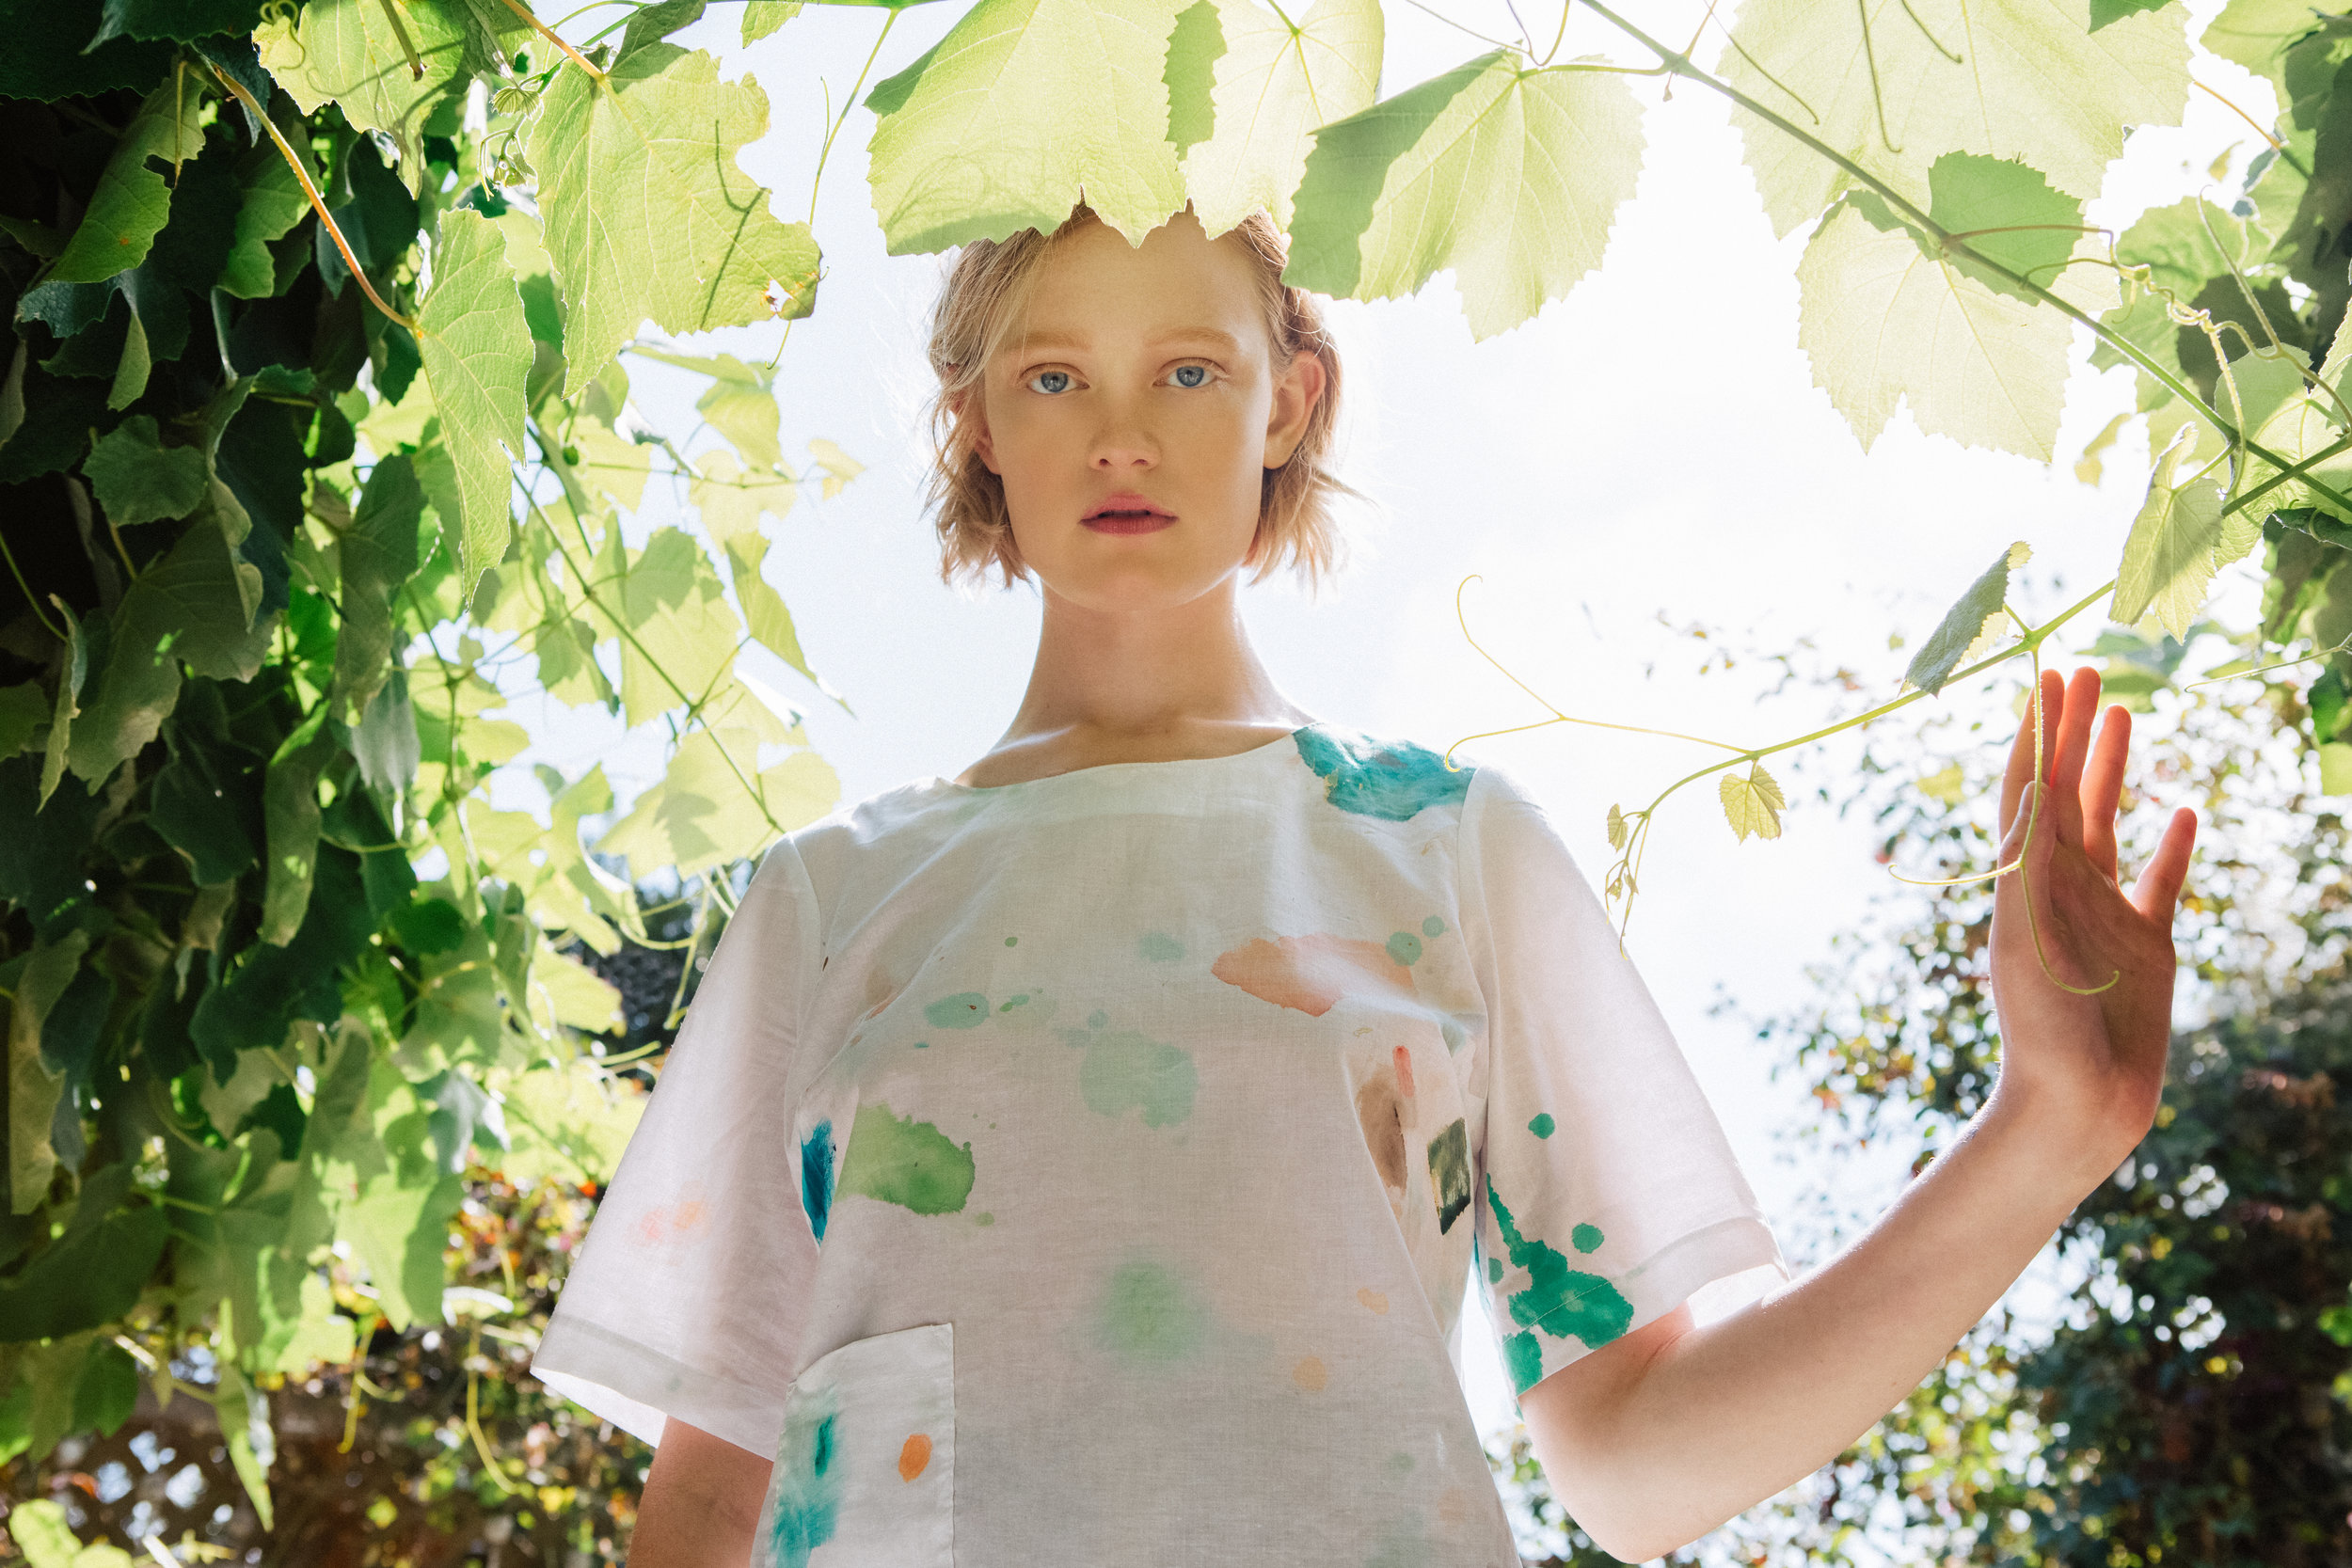 Painter's Blouse - Jill Aiko Yee x Dani Schafer - Photo: Joy Newell